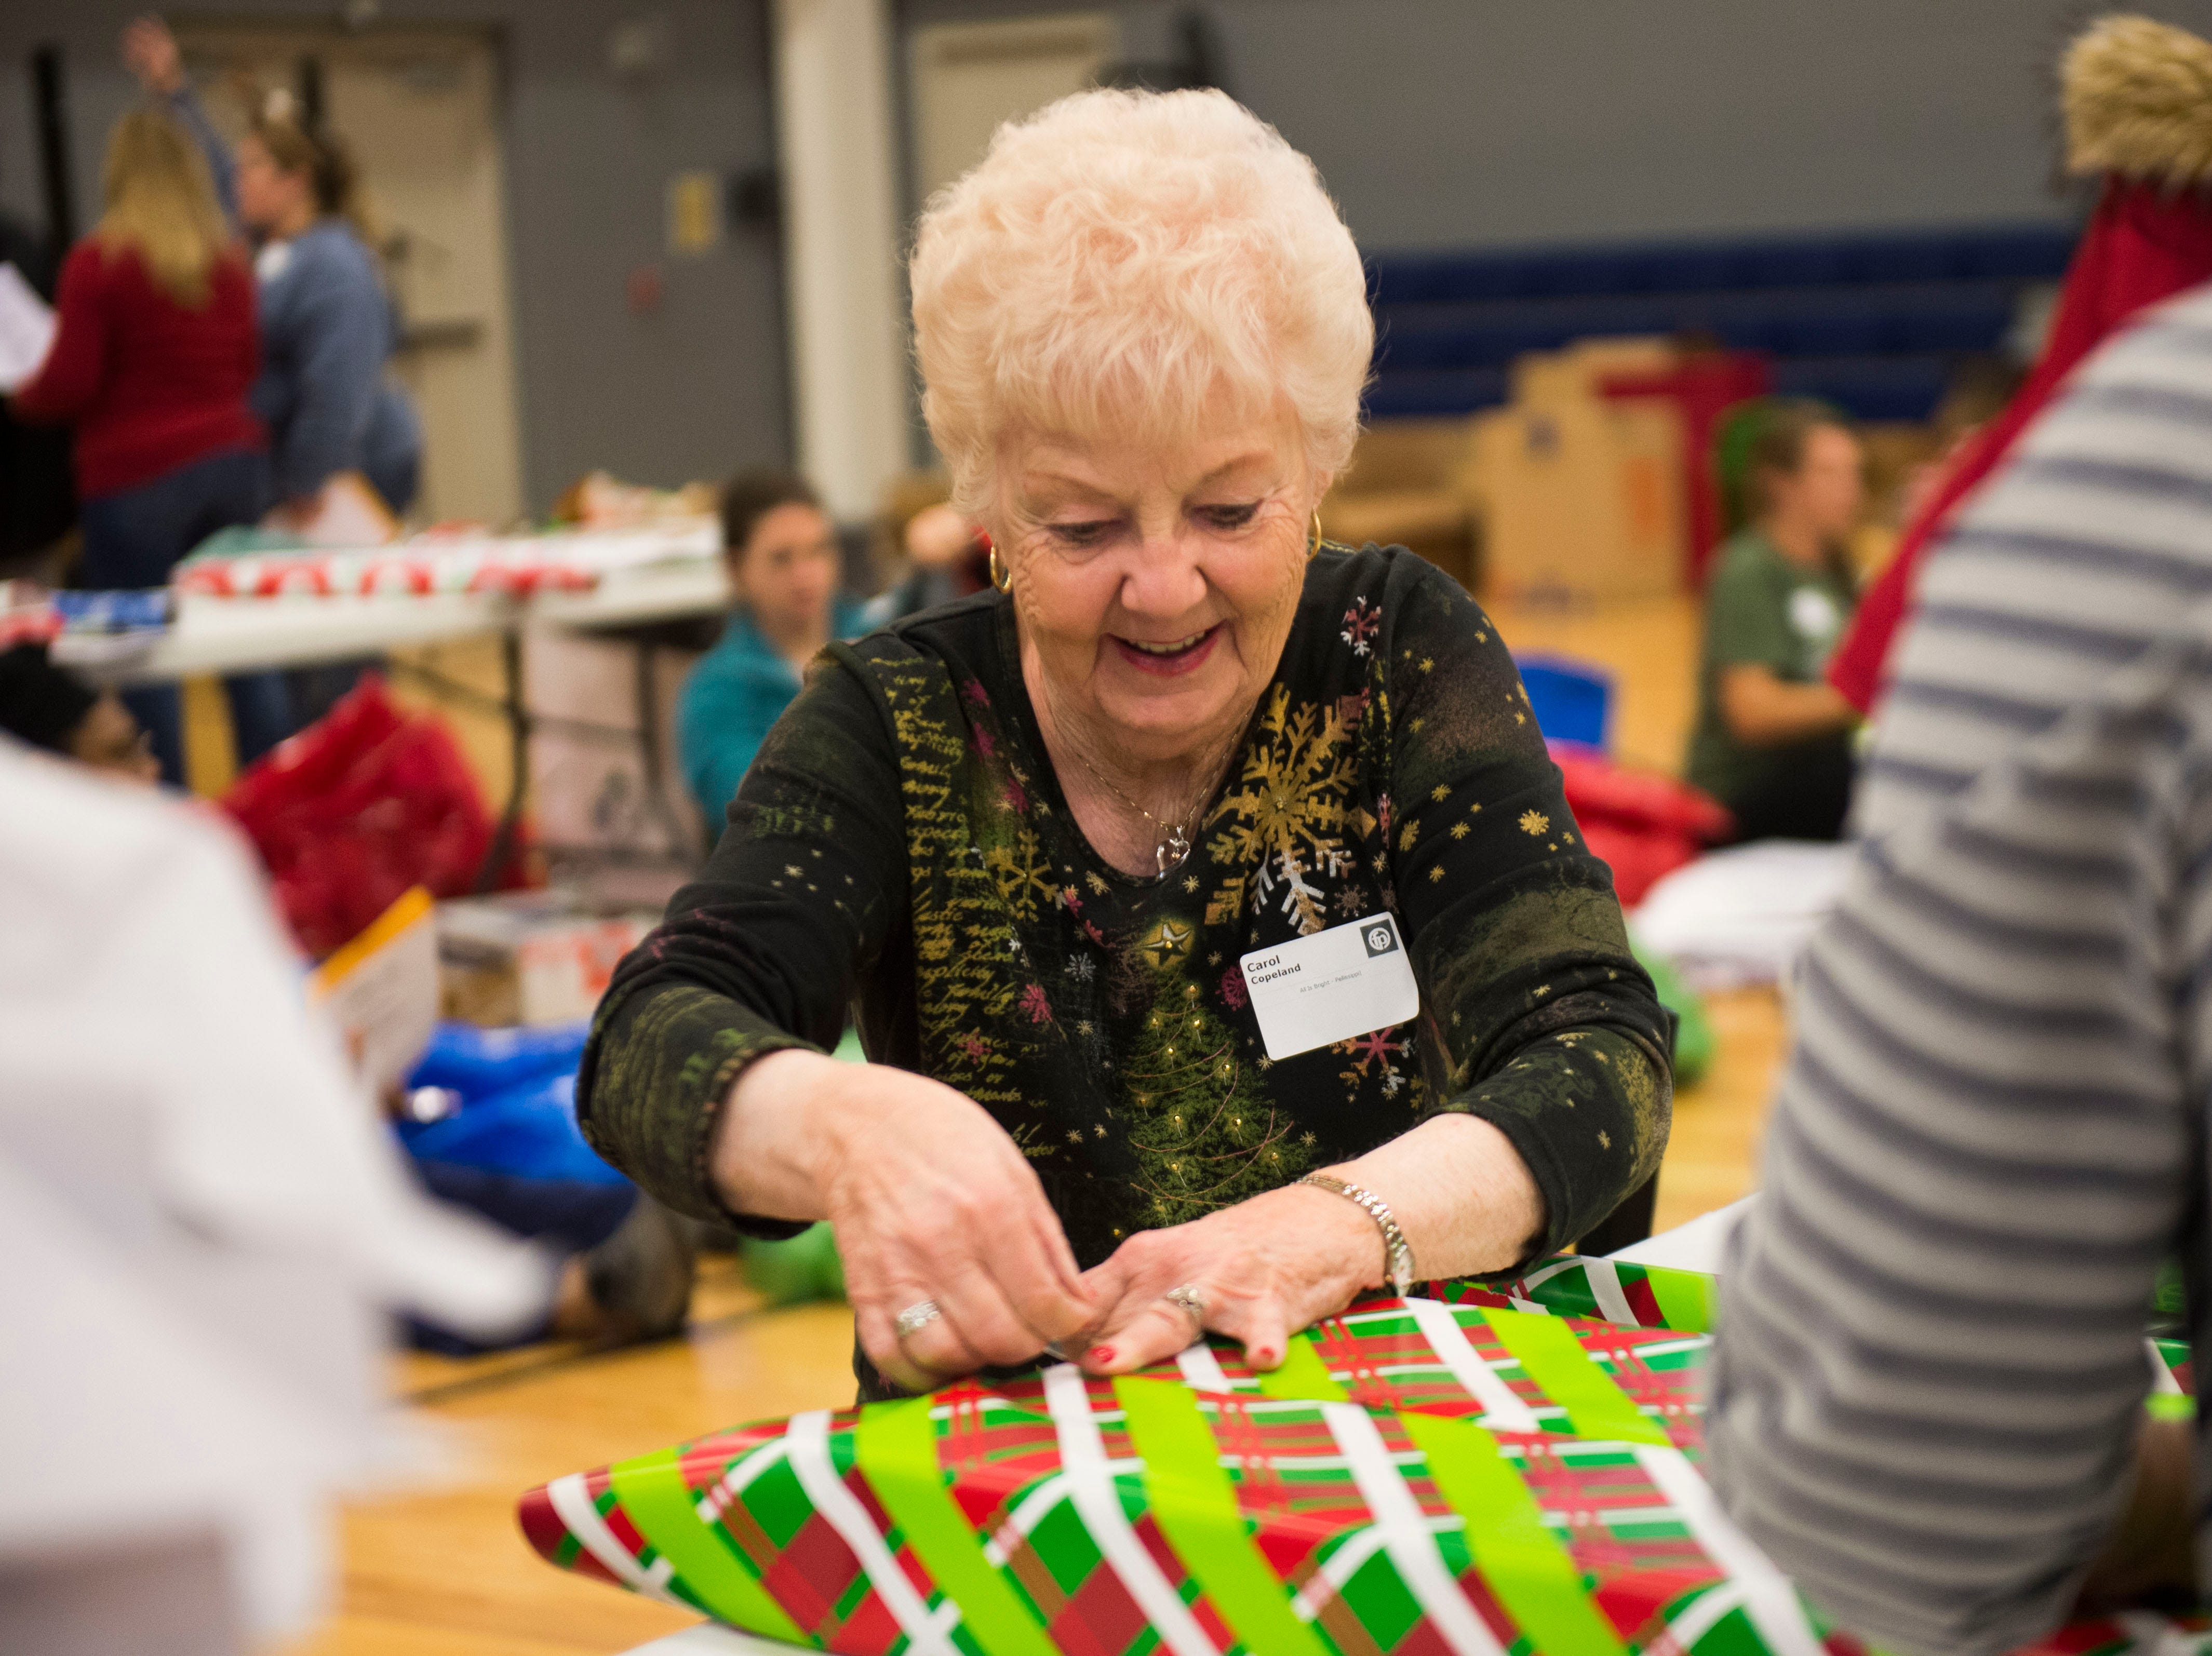 Carol Copeland, of Knoxville wraps gifts at the Boys and Girls Clubs Regal Teen Center in Knoxville Saturday, Dec. 8, 2018. Parents, grandparents or guardians of over 1,500 underserved children were able to pick out a limited number of free gifts for their child.